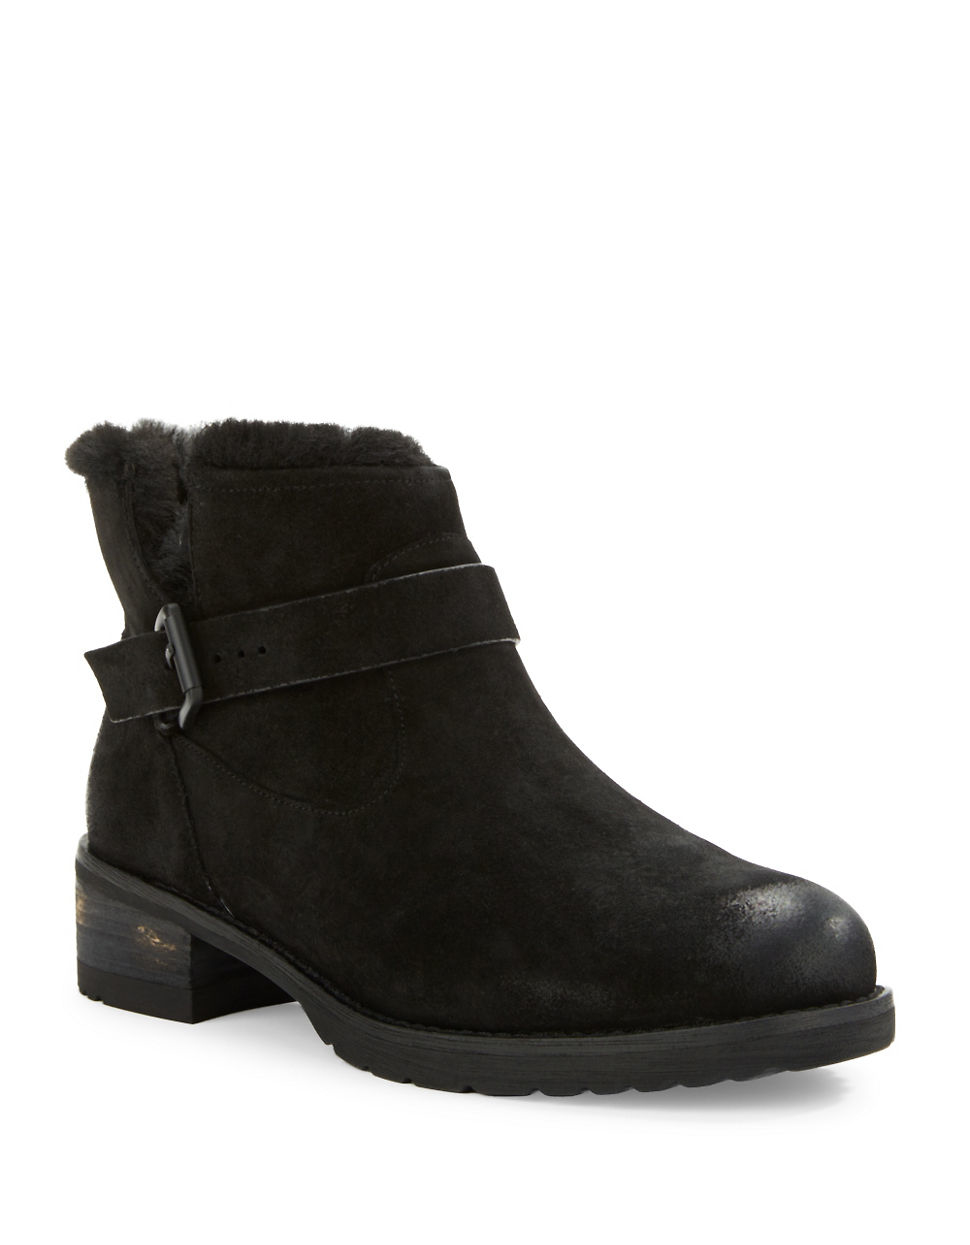 Find Ankle boots, black from the Womens department at Debenhams. Shop a wide range of Boots products and more at our online shop today. Menu Menu Black 'Millet' faux fur lined leather ankle boots Save. Was £ Now £ Faith Black 'Bace' stiletto heel boots Save. Was £ .